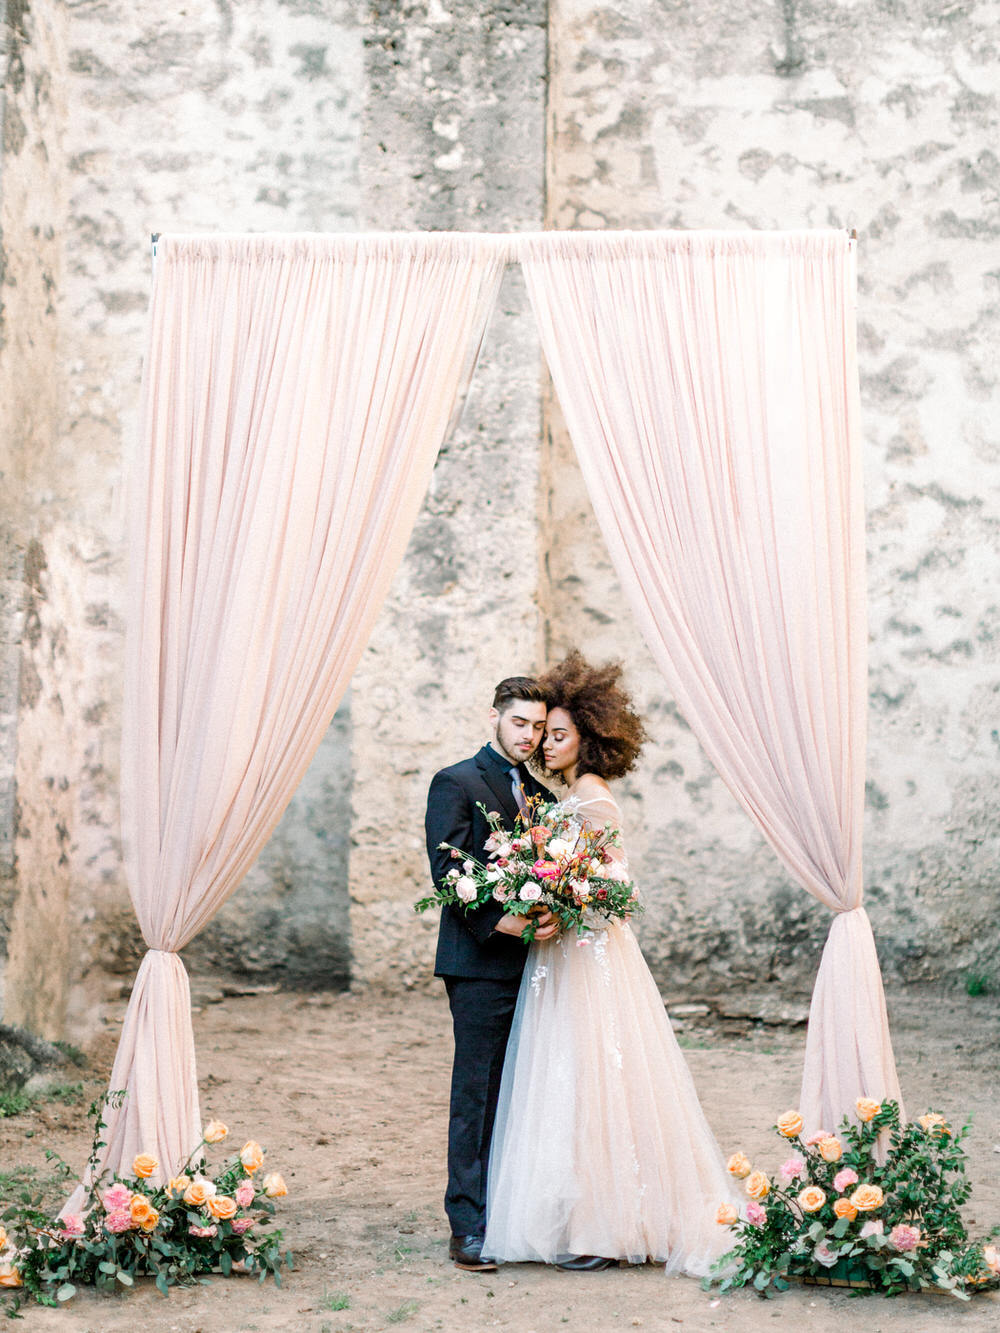 soft blush pink draping at wedding ceremony with bride and groom